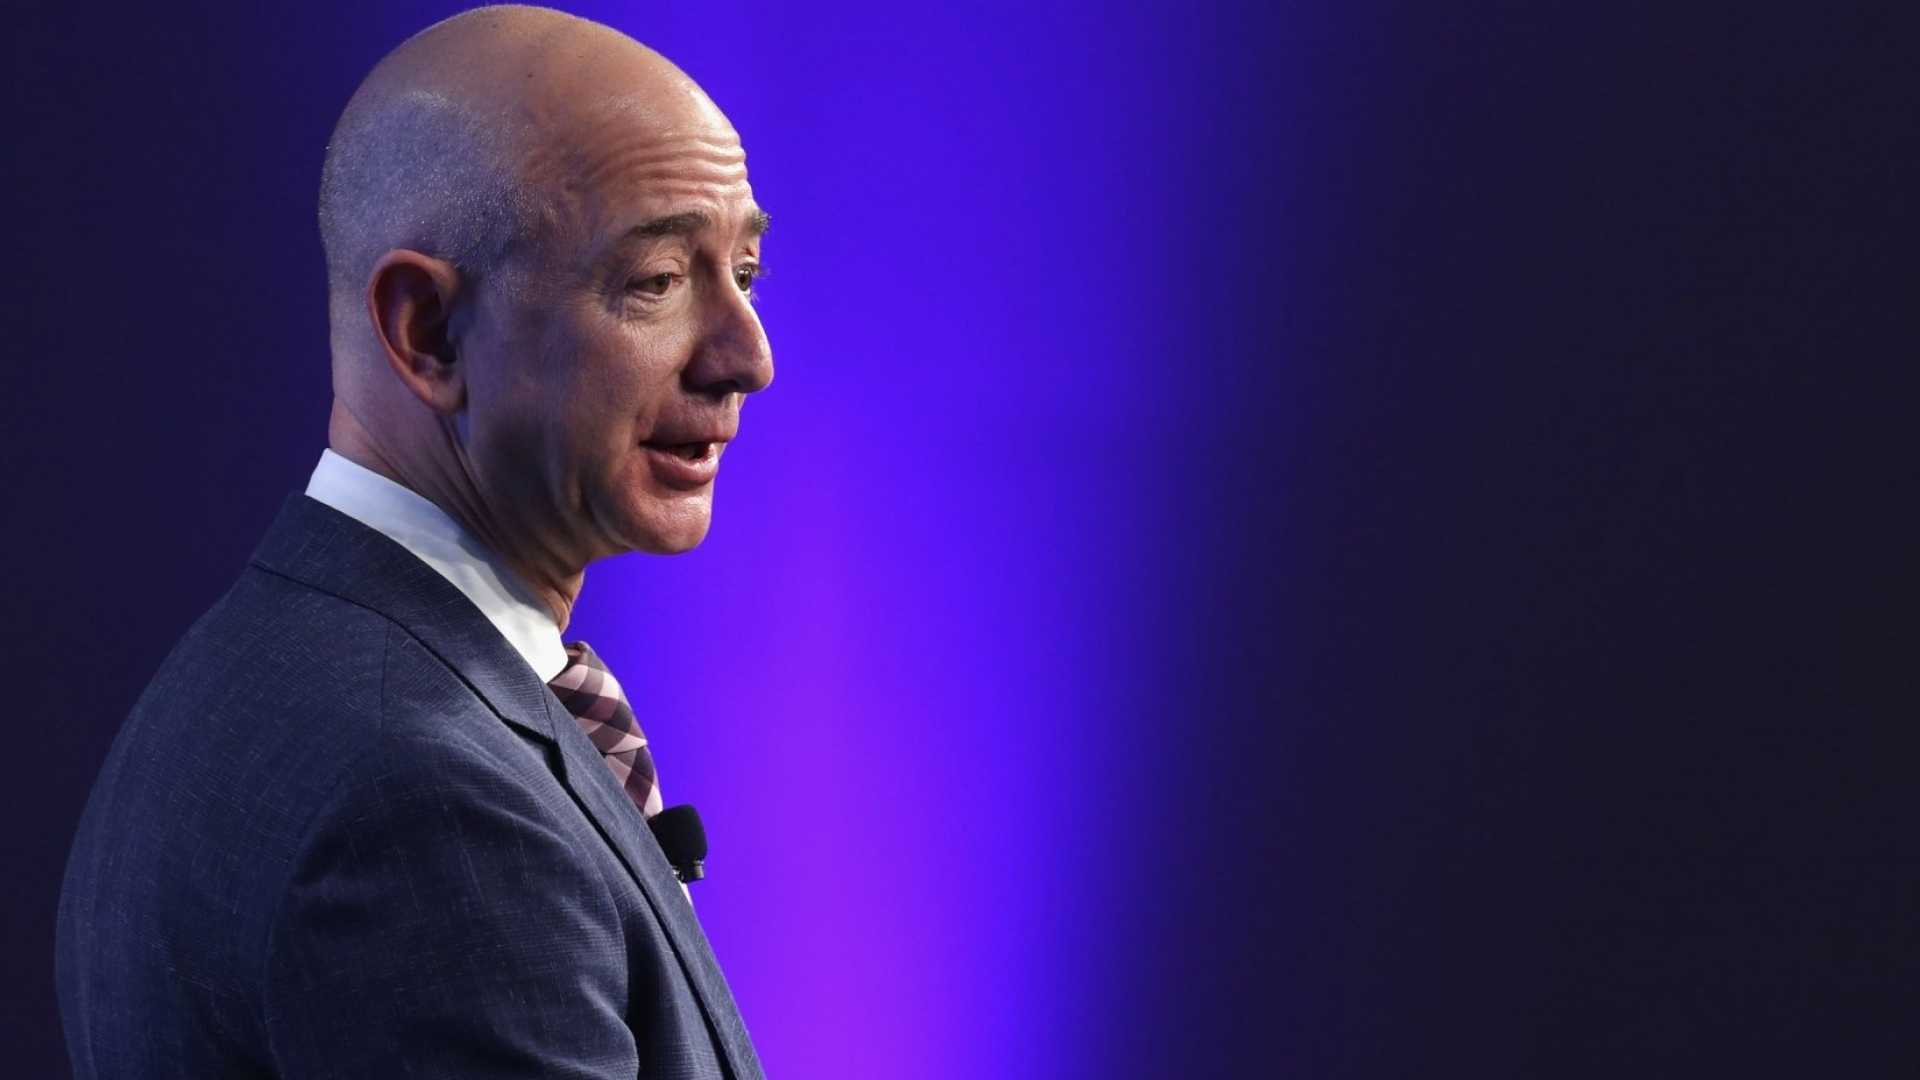 Patent Reveals Amazon Wants to Deliver Packages Via a Self-Driving Network